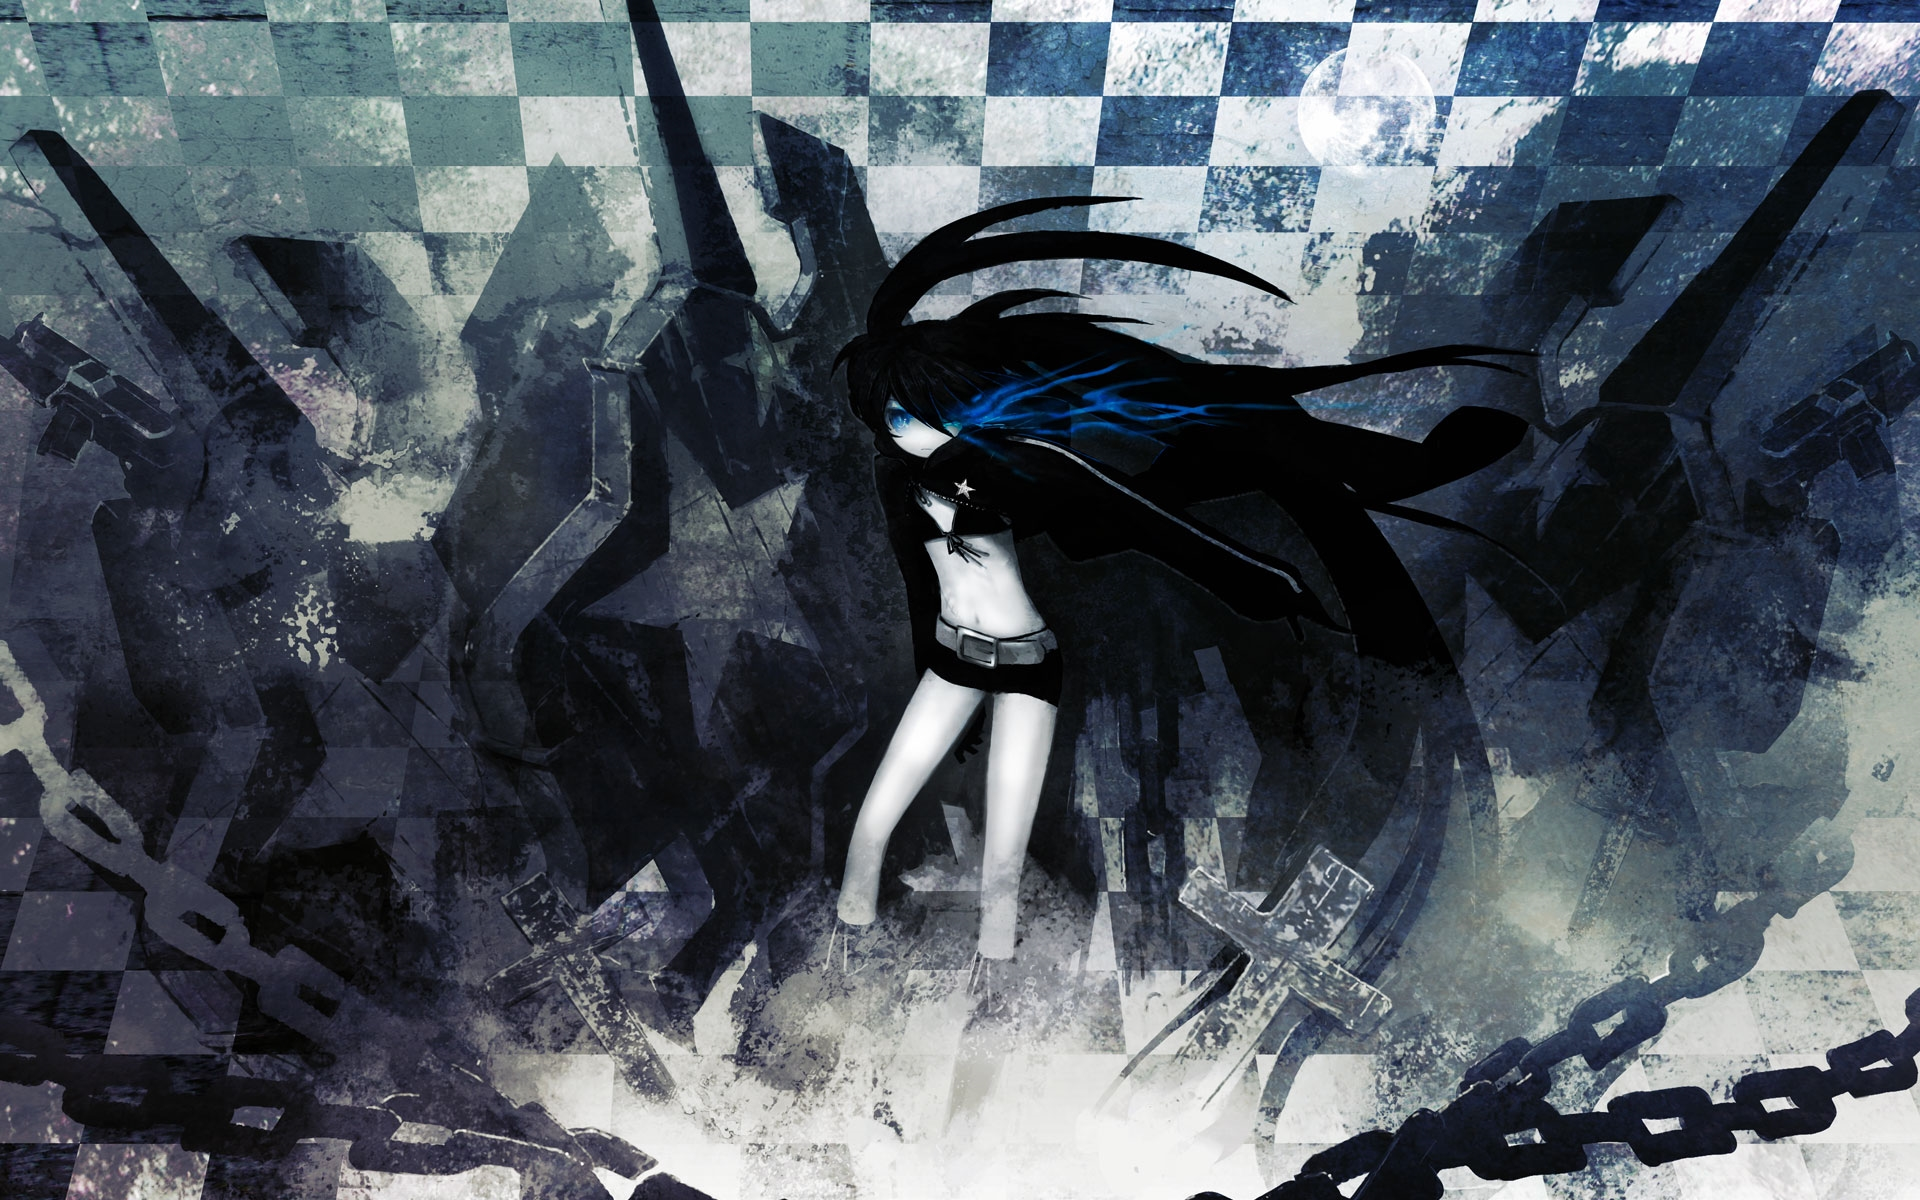 black rock shooter pictures